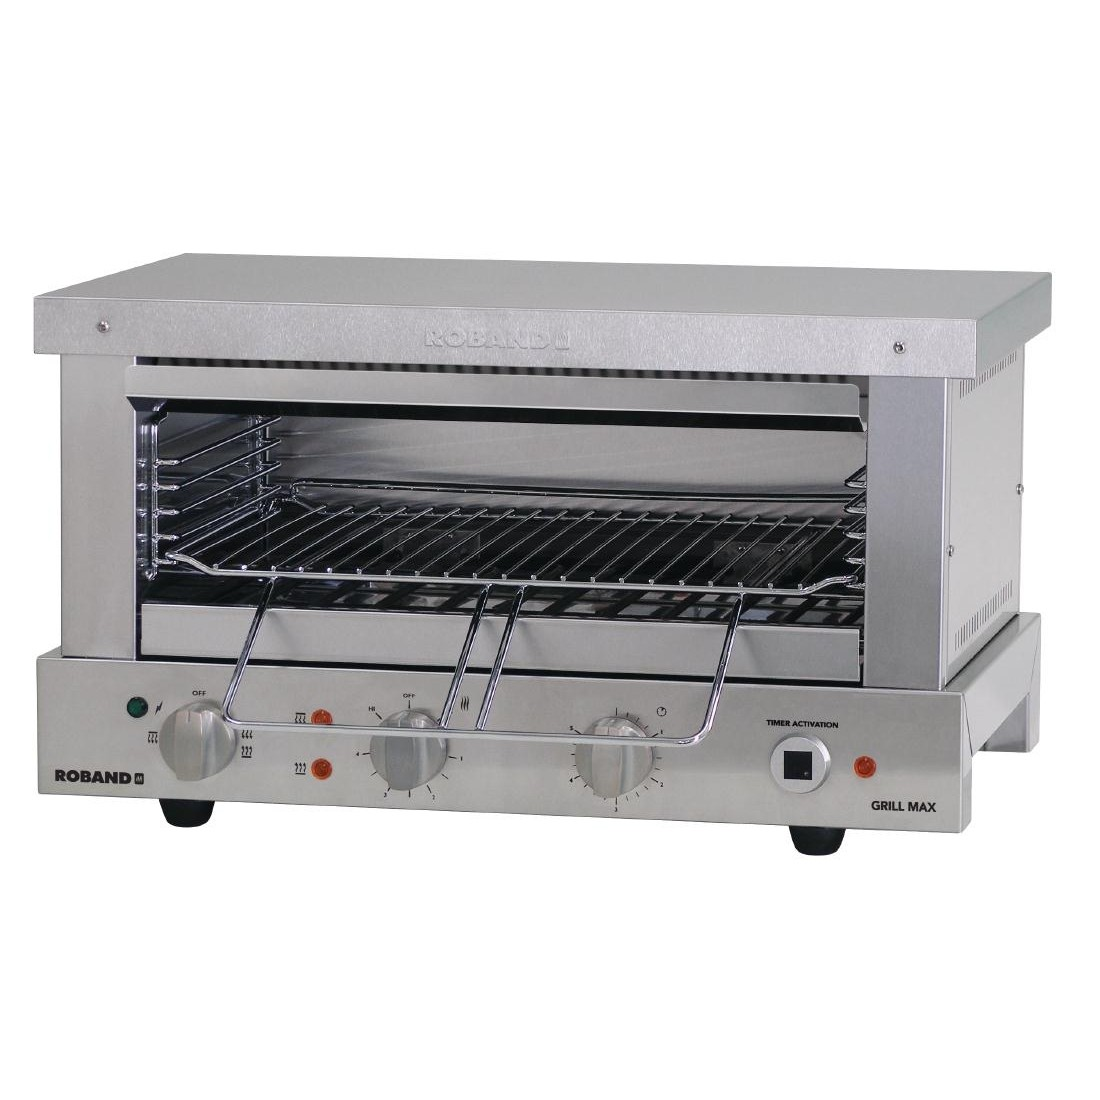 Roband GMW815E Grill Max Wide Mouth Toaster 15 Amp